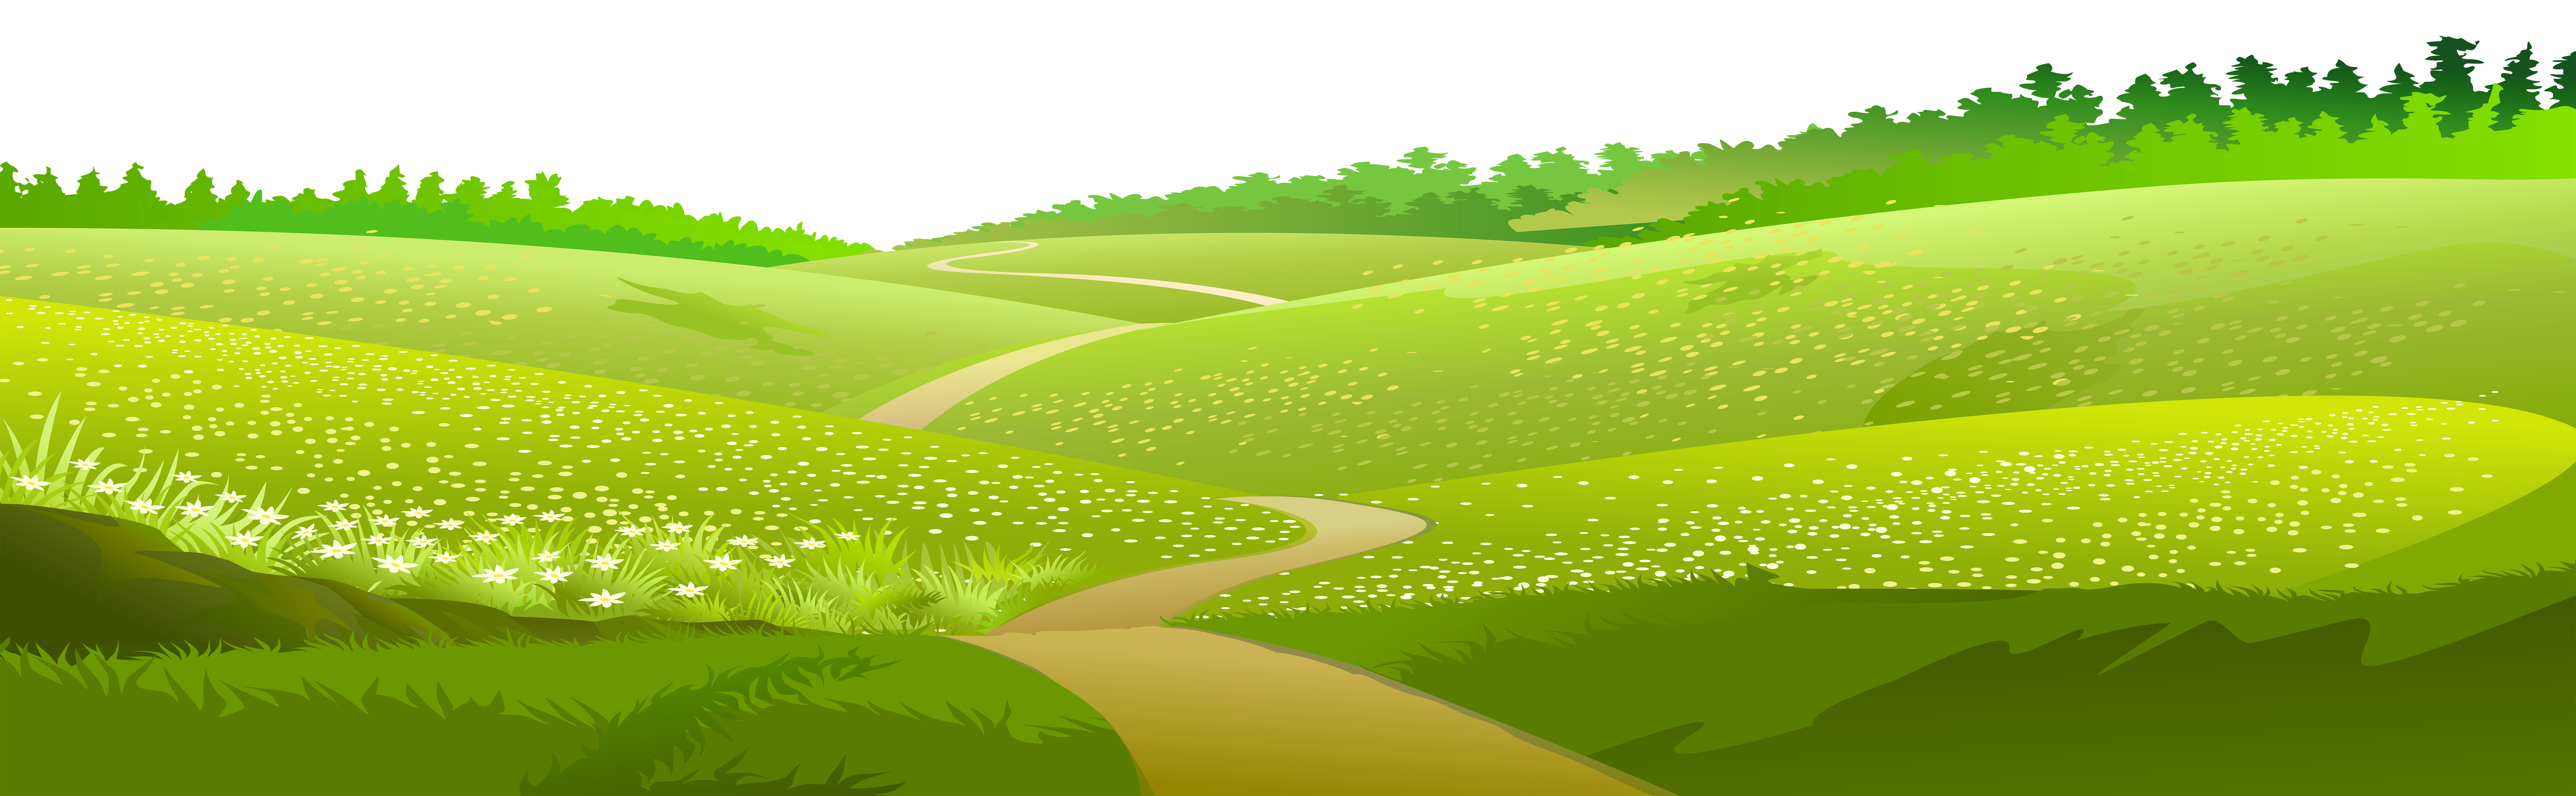 Ground clipart transparent. Nice inspiration ideas meadow